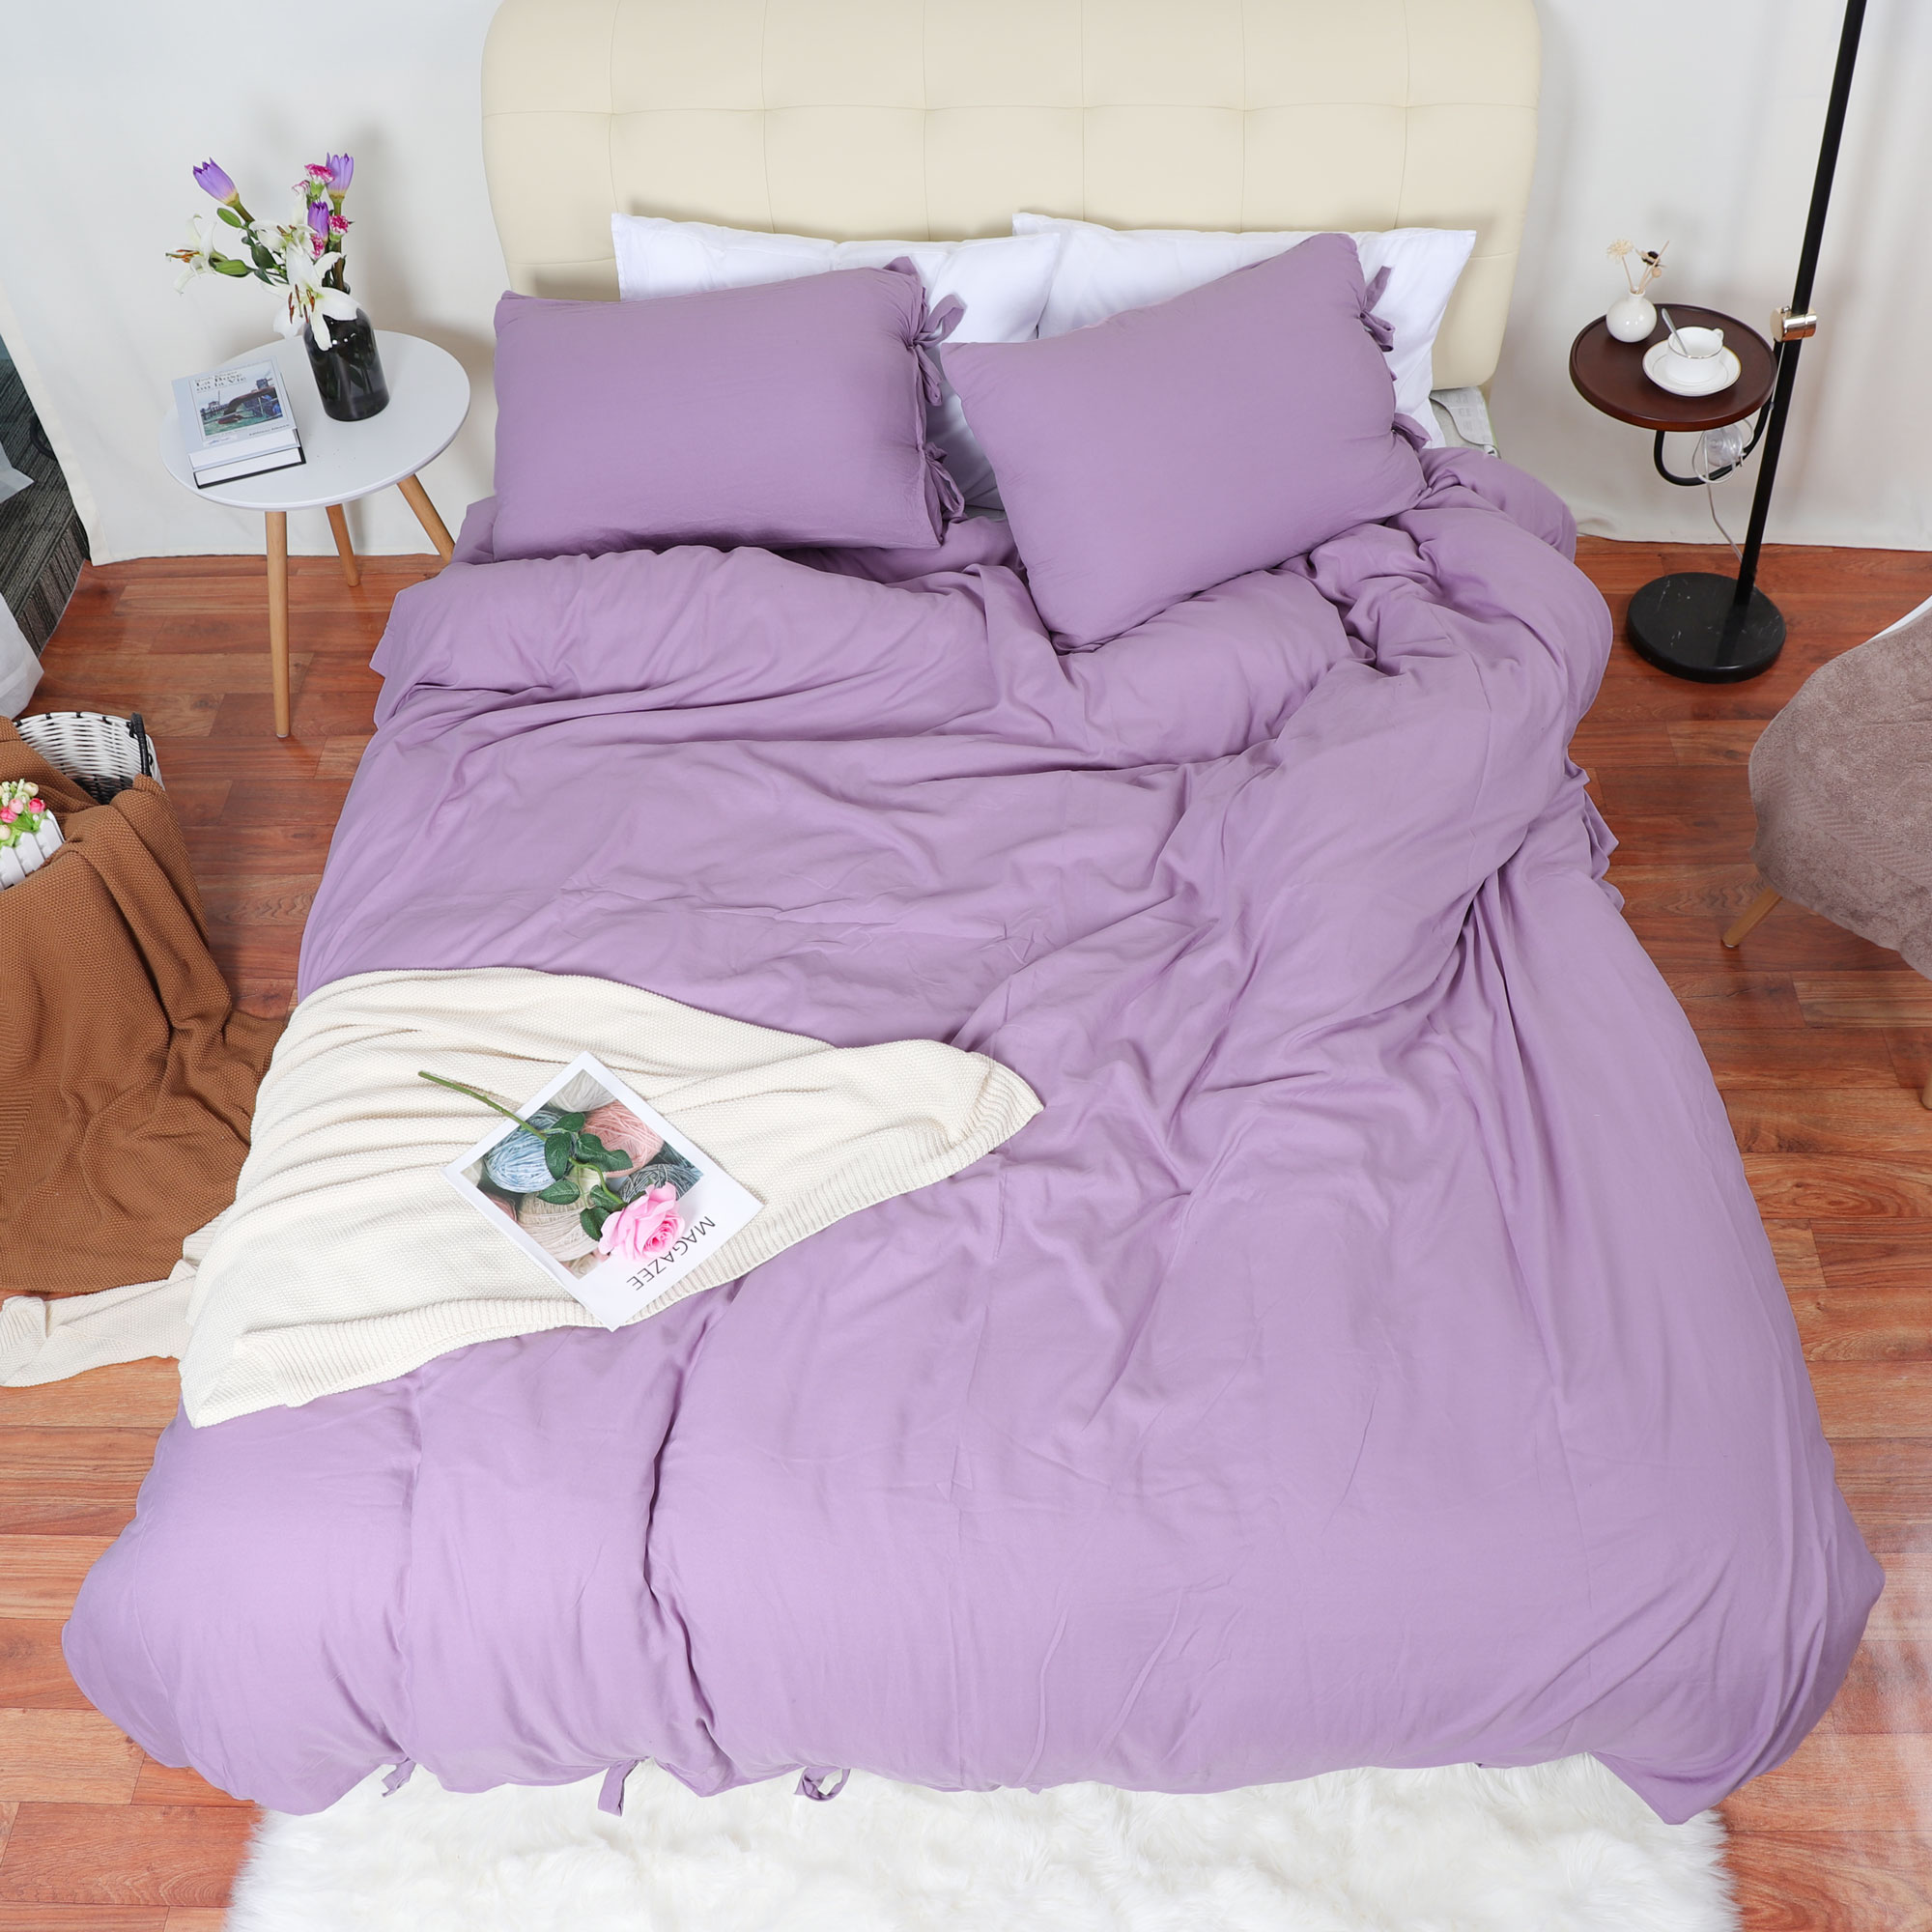 Duvet Cover And Shams Egyptian Comfort 1800 Count Bedding Set Light Purple Queen - image 7 of 8